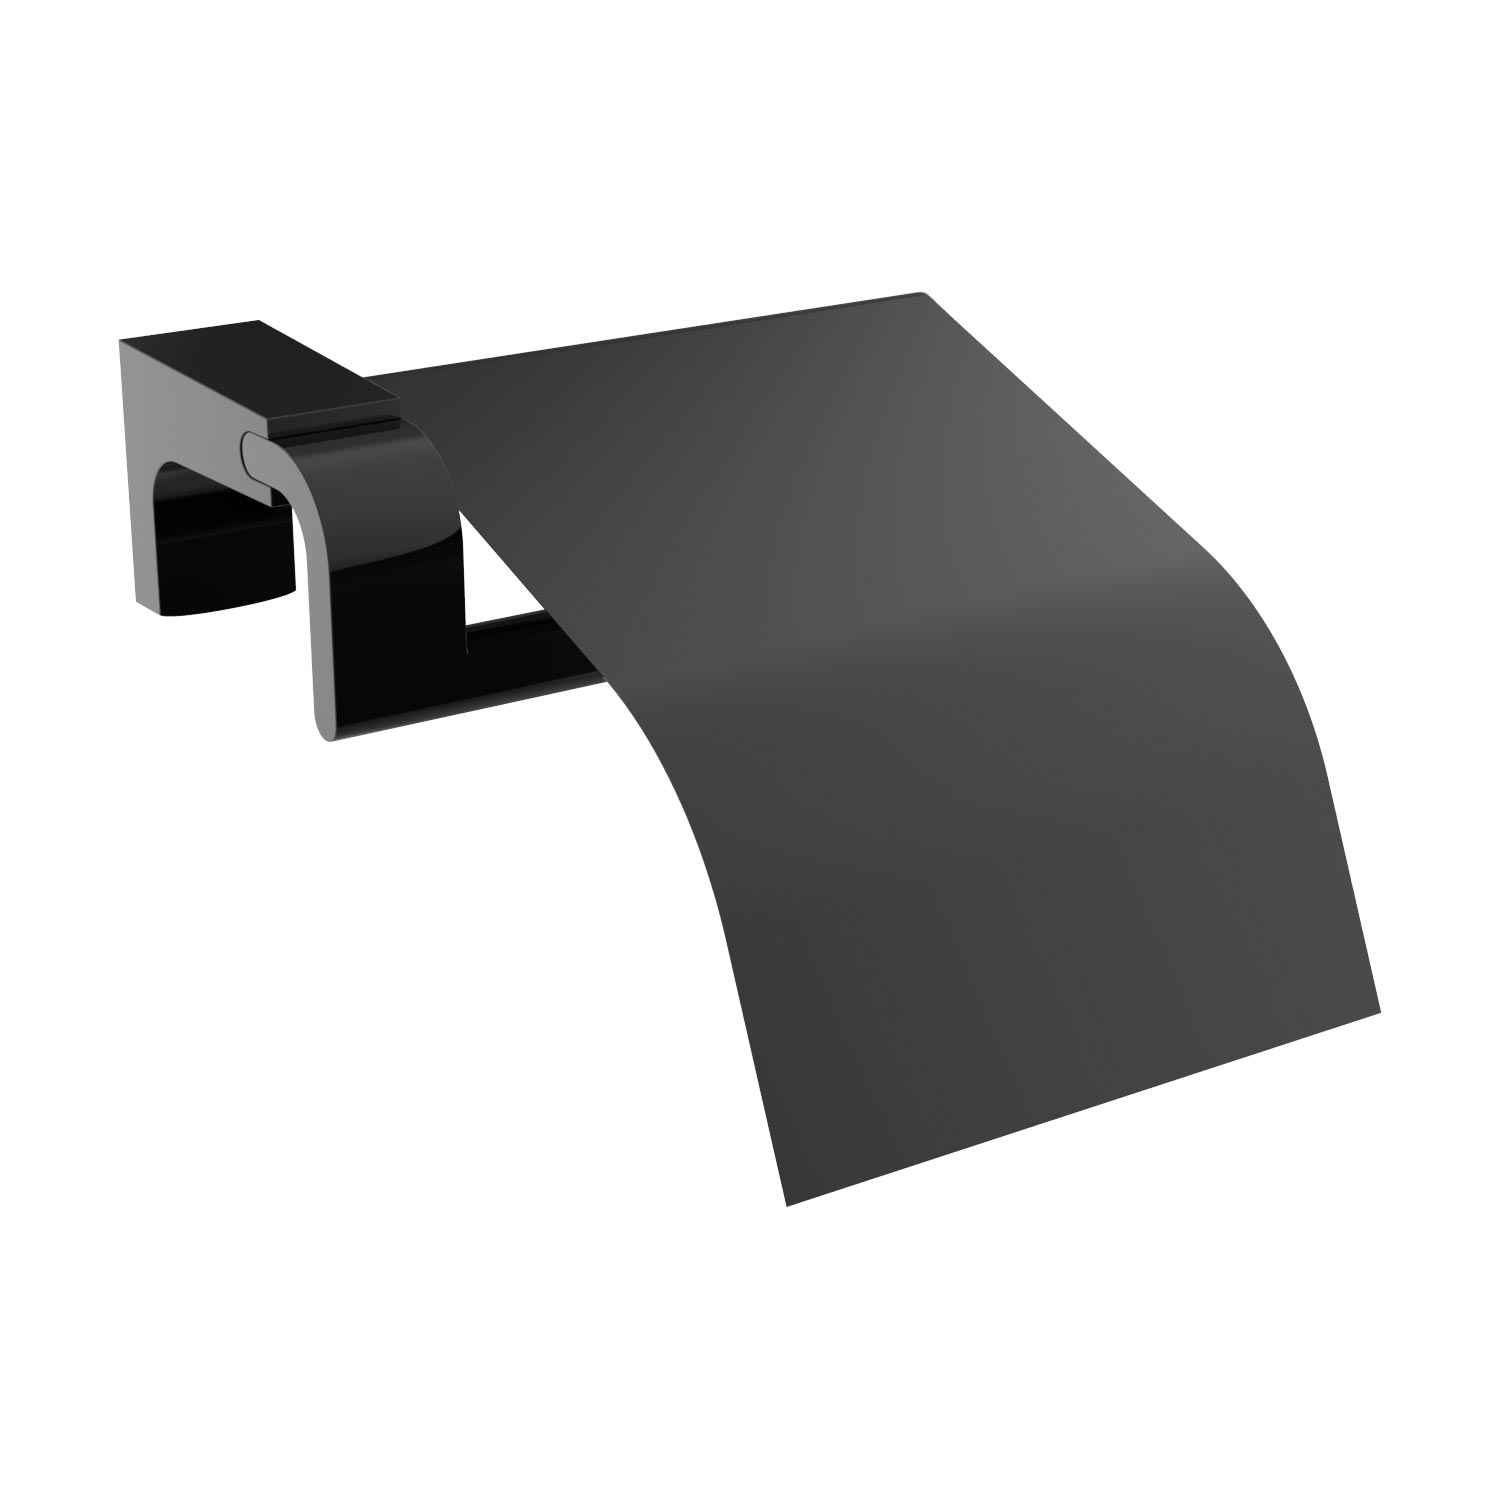 Black Luxury Toilet Roll Holder with Lid